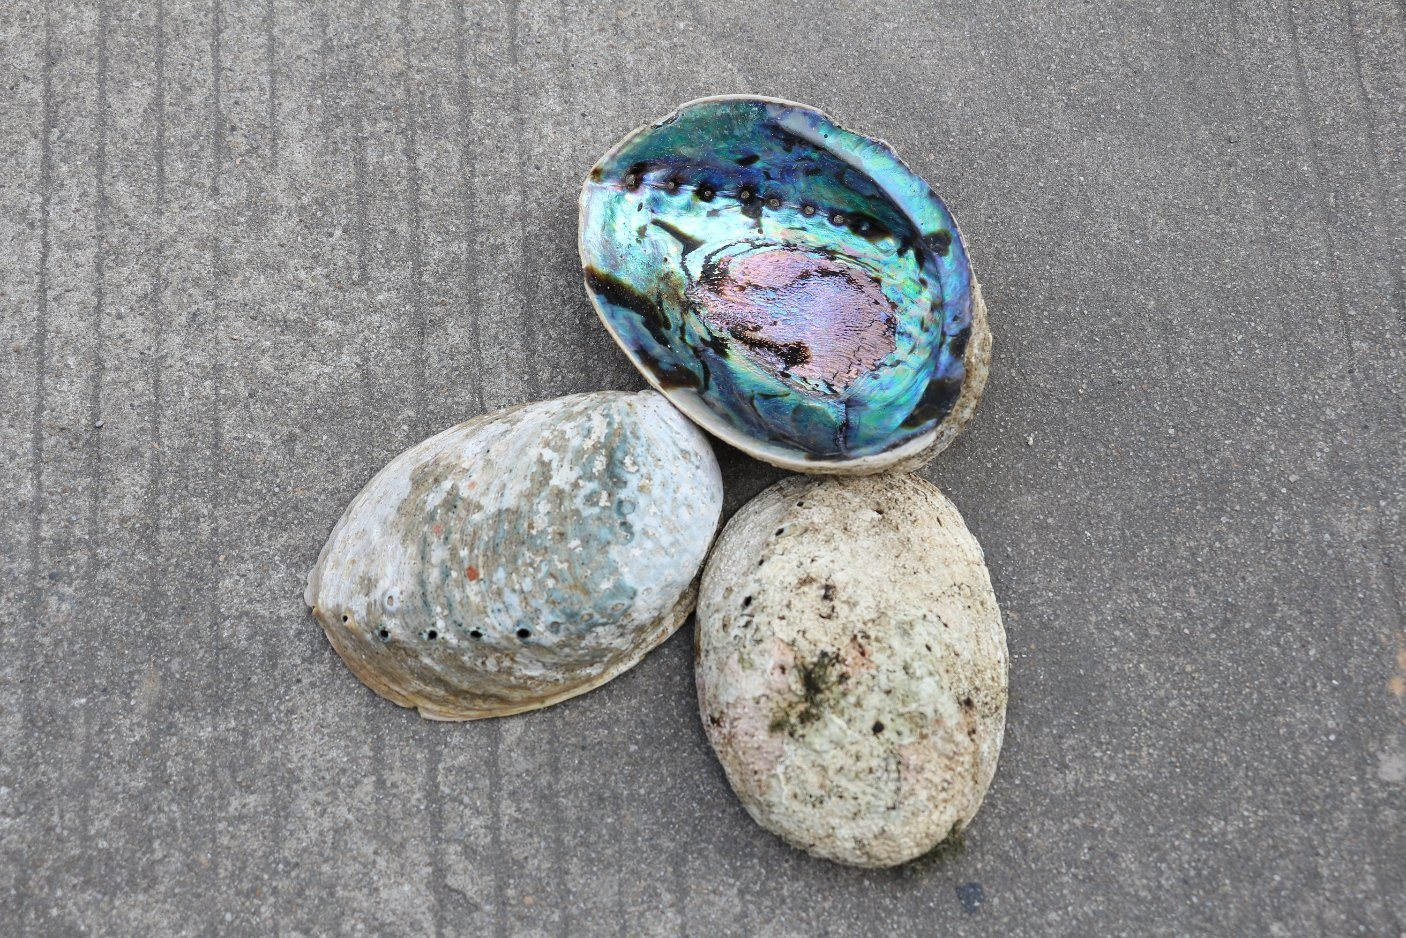 New Zealand Paua Abalone Shell Raw Material for Home Decoration